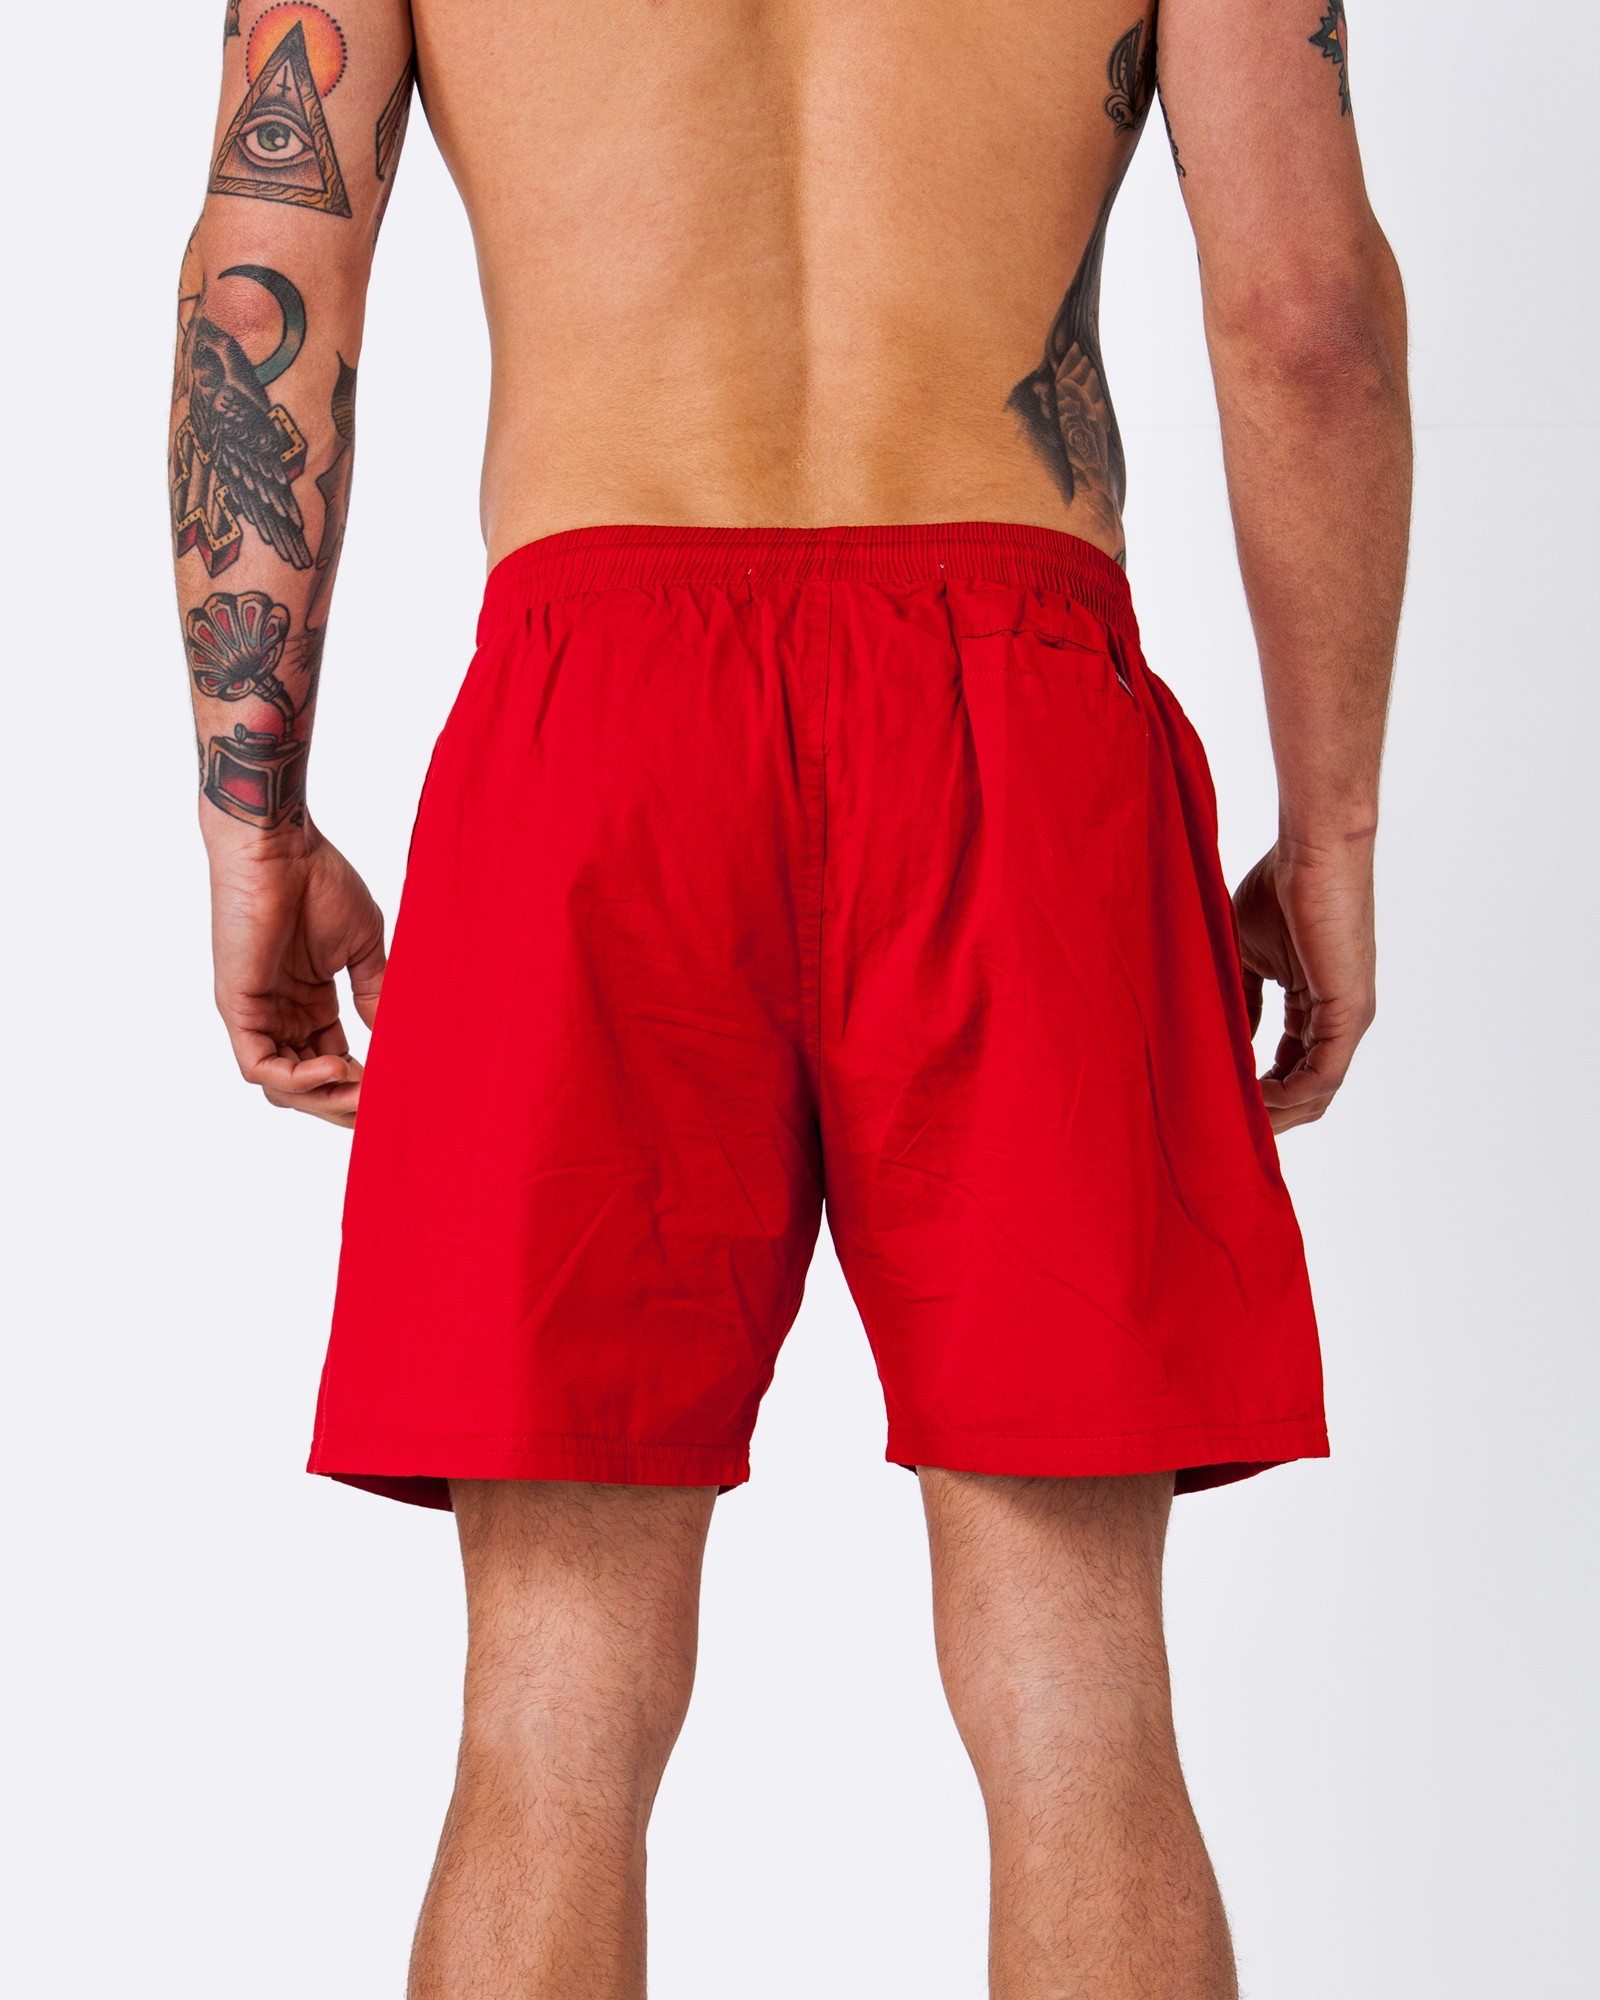 DRY ICE RED SHORTS